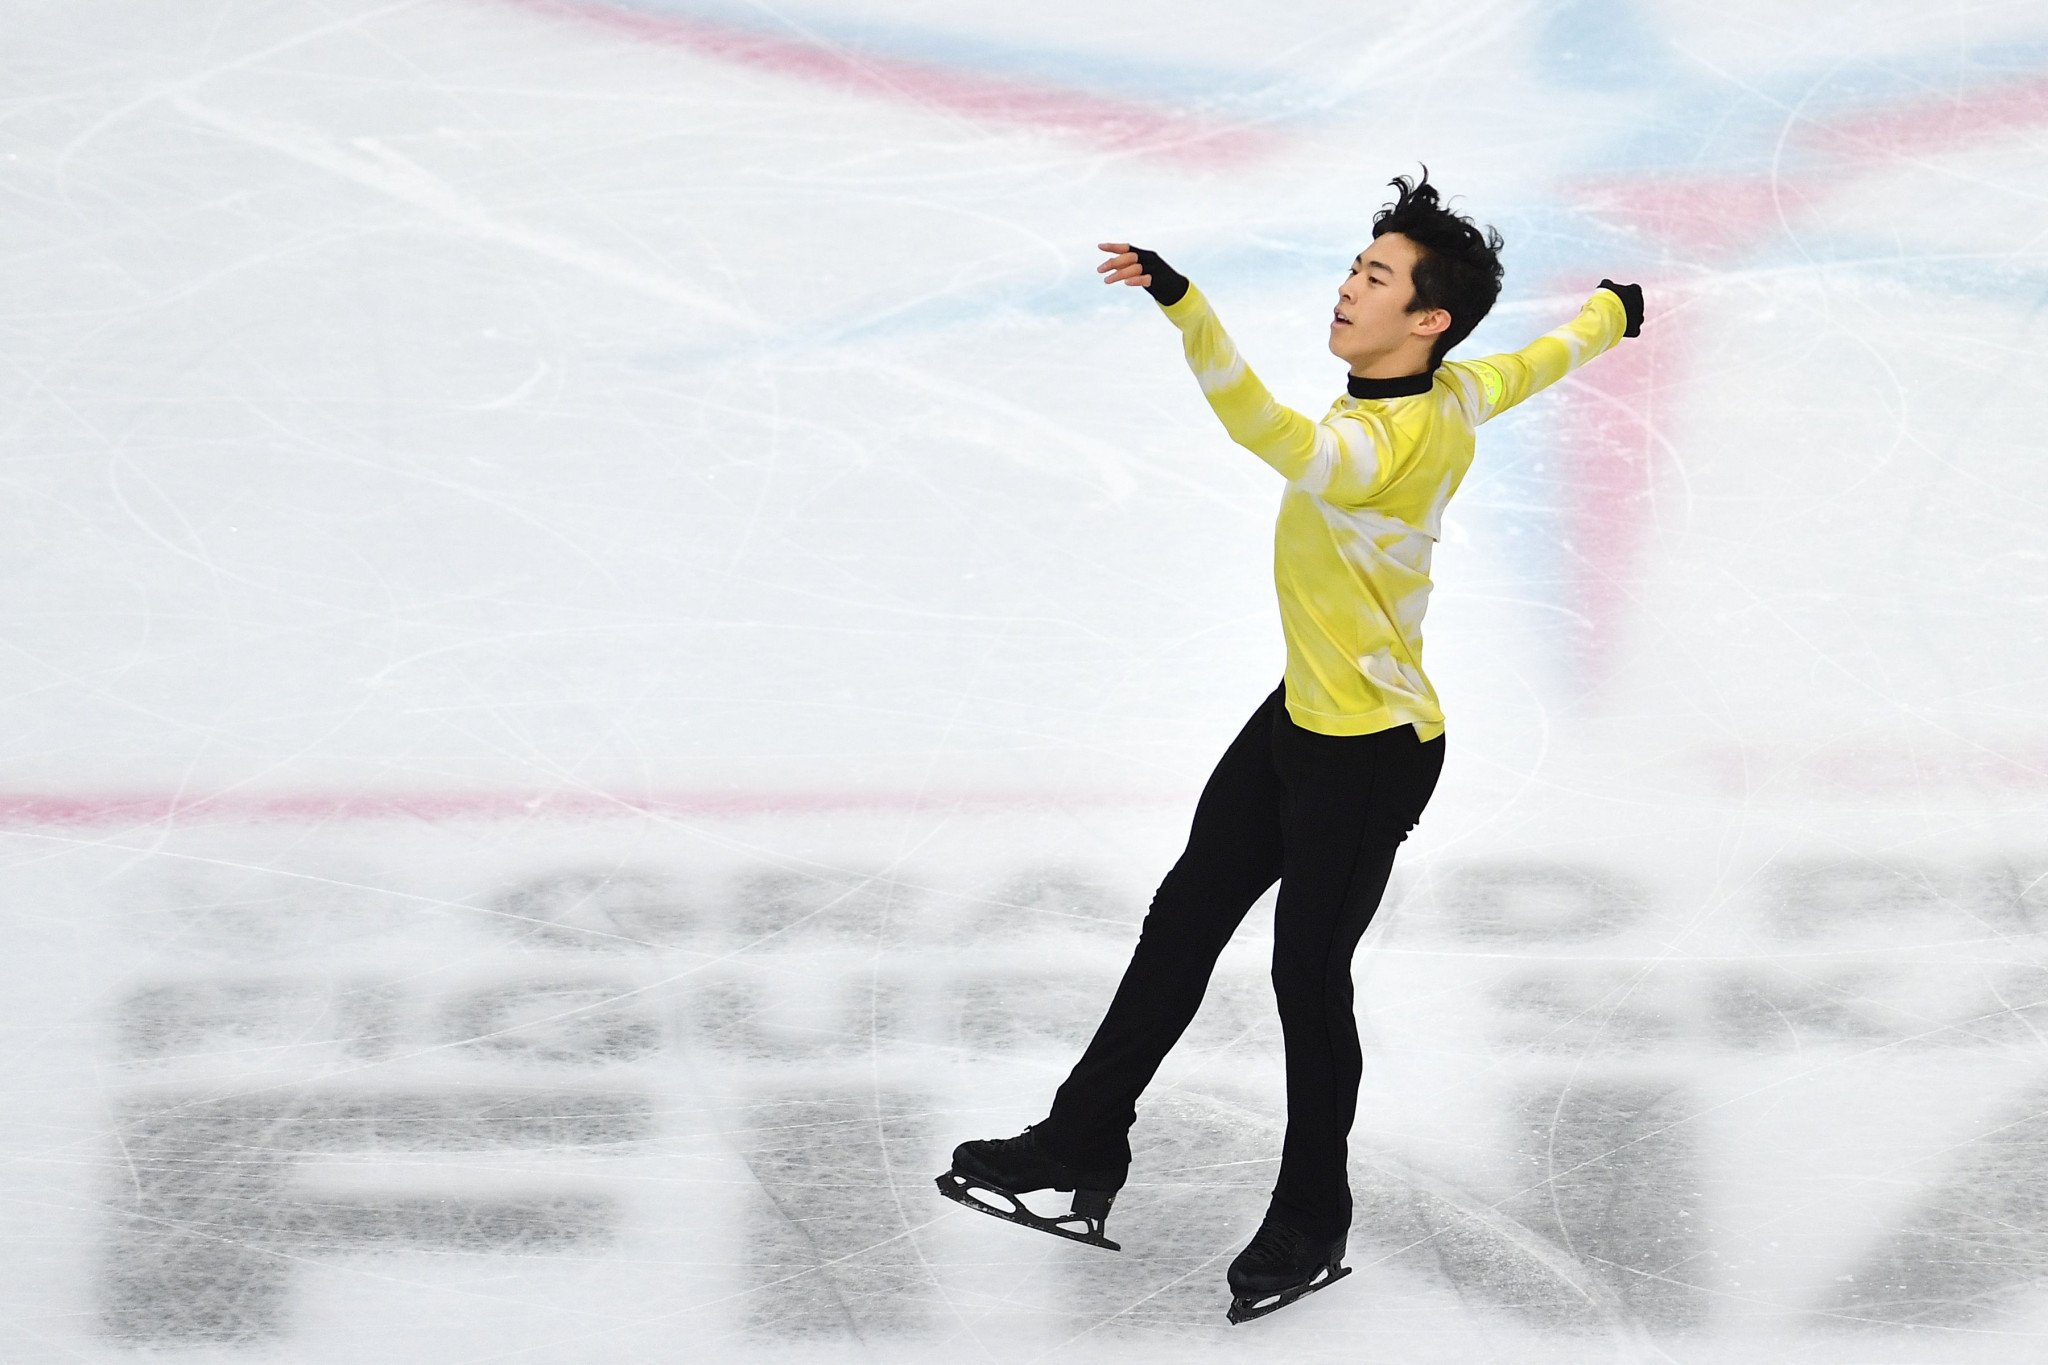 World figure skating champion Chen confirmed for Skate America